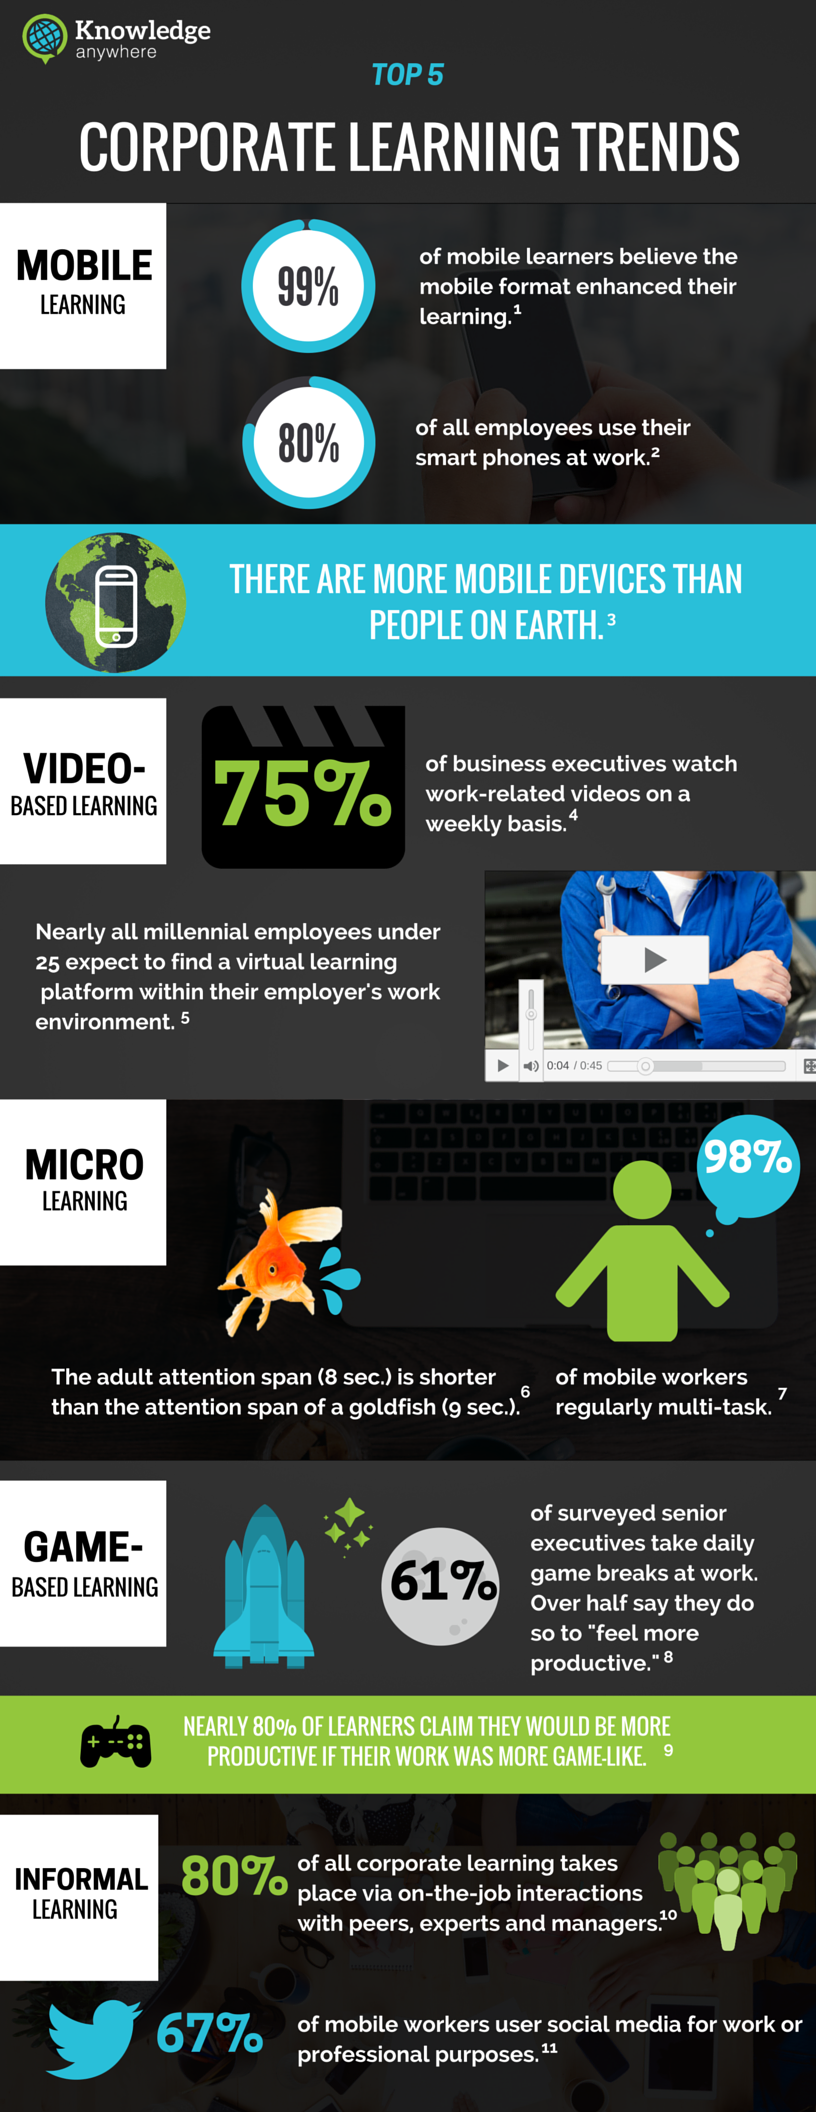 Top 5 Corporate Learning Trends 2016 Infographic